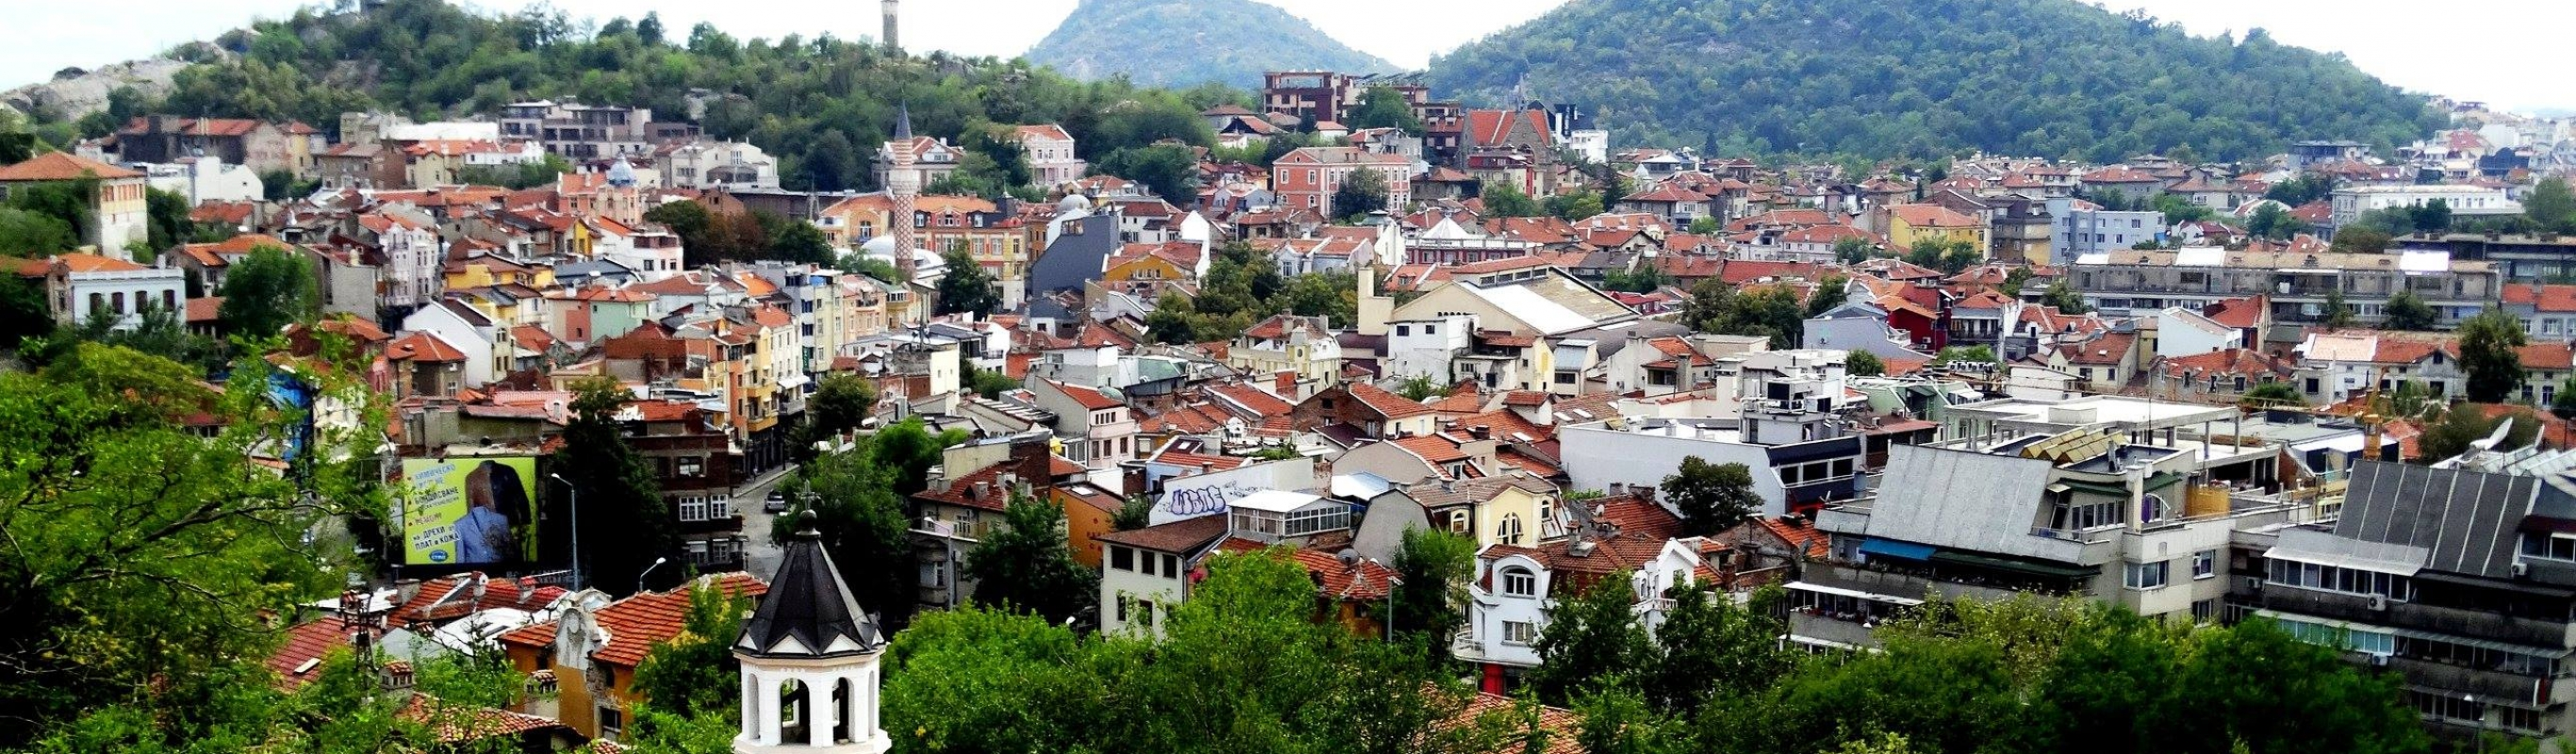 What to do in Plovdiv during the weekend (09.09-10.09)